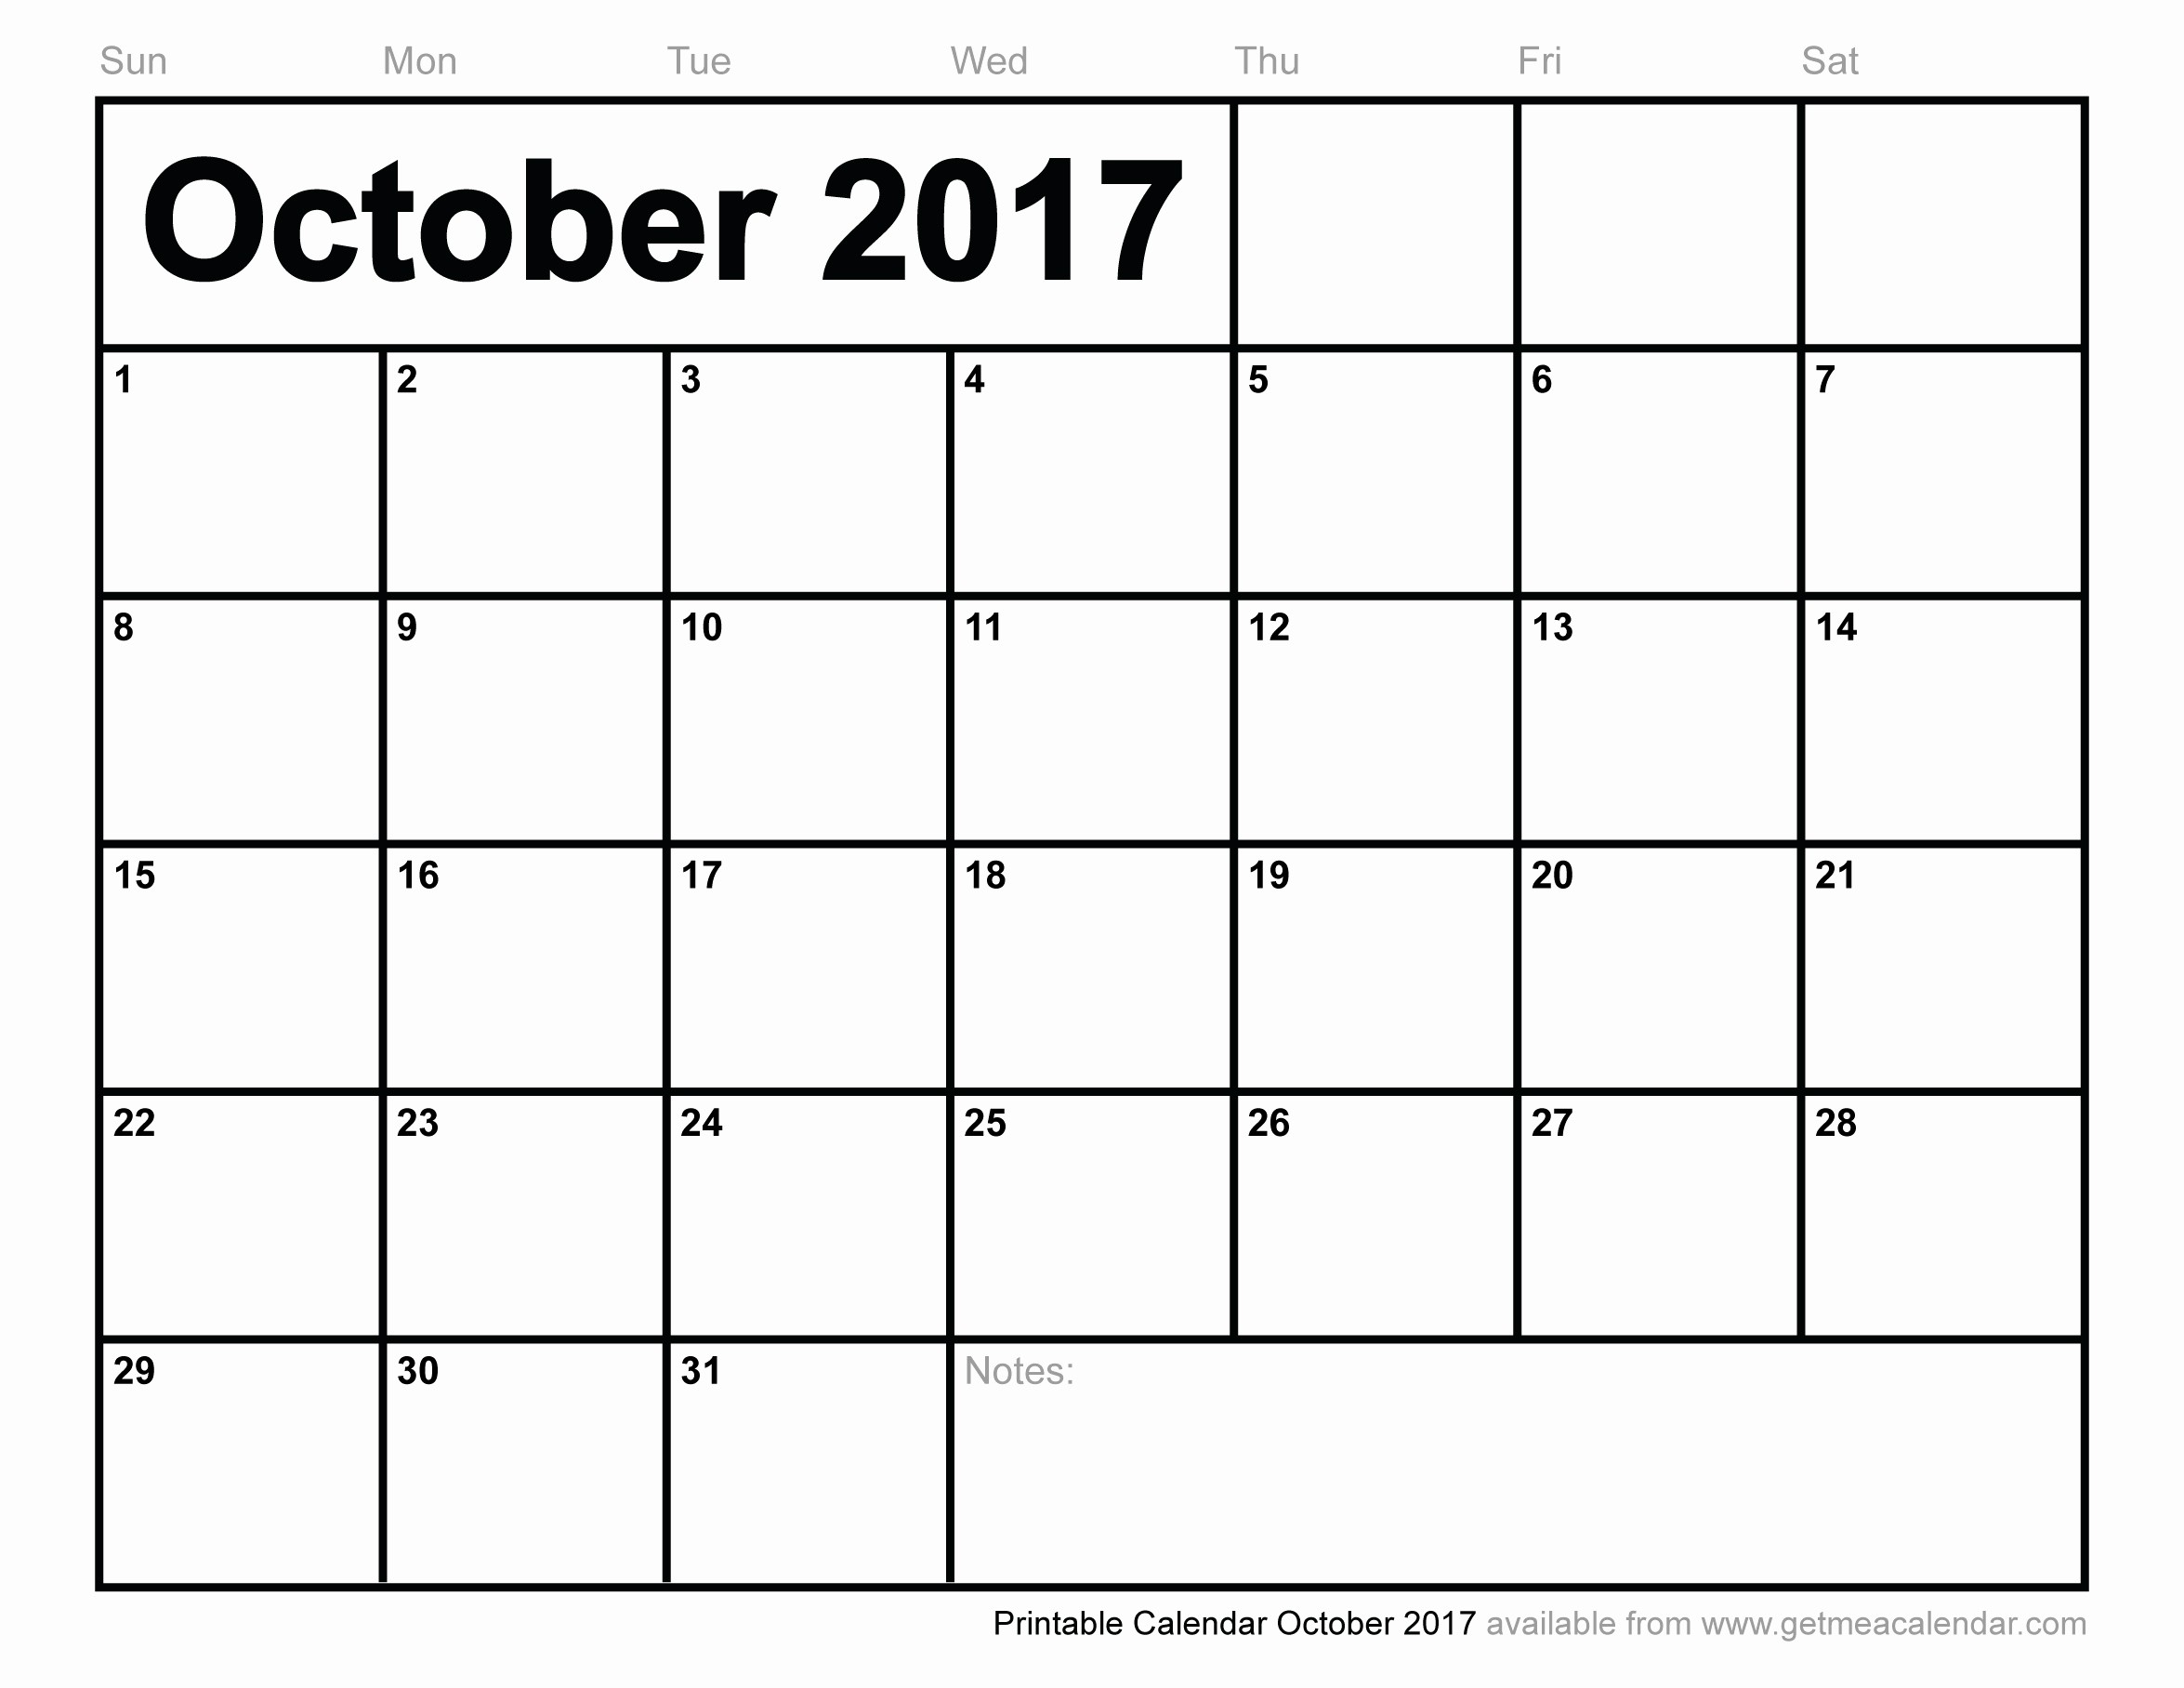 Blank Calendar Template August 2017 Elegant October 2017 Calendar with Holidays Uk